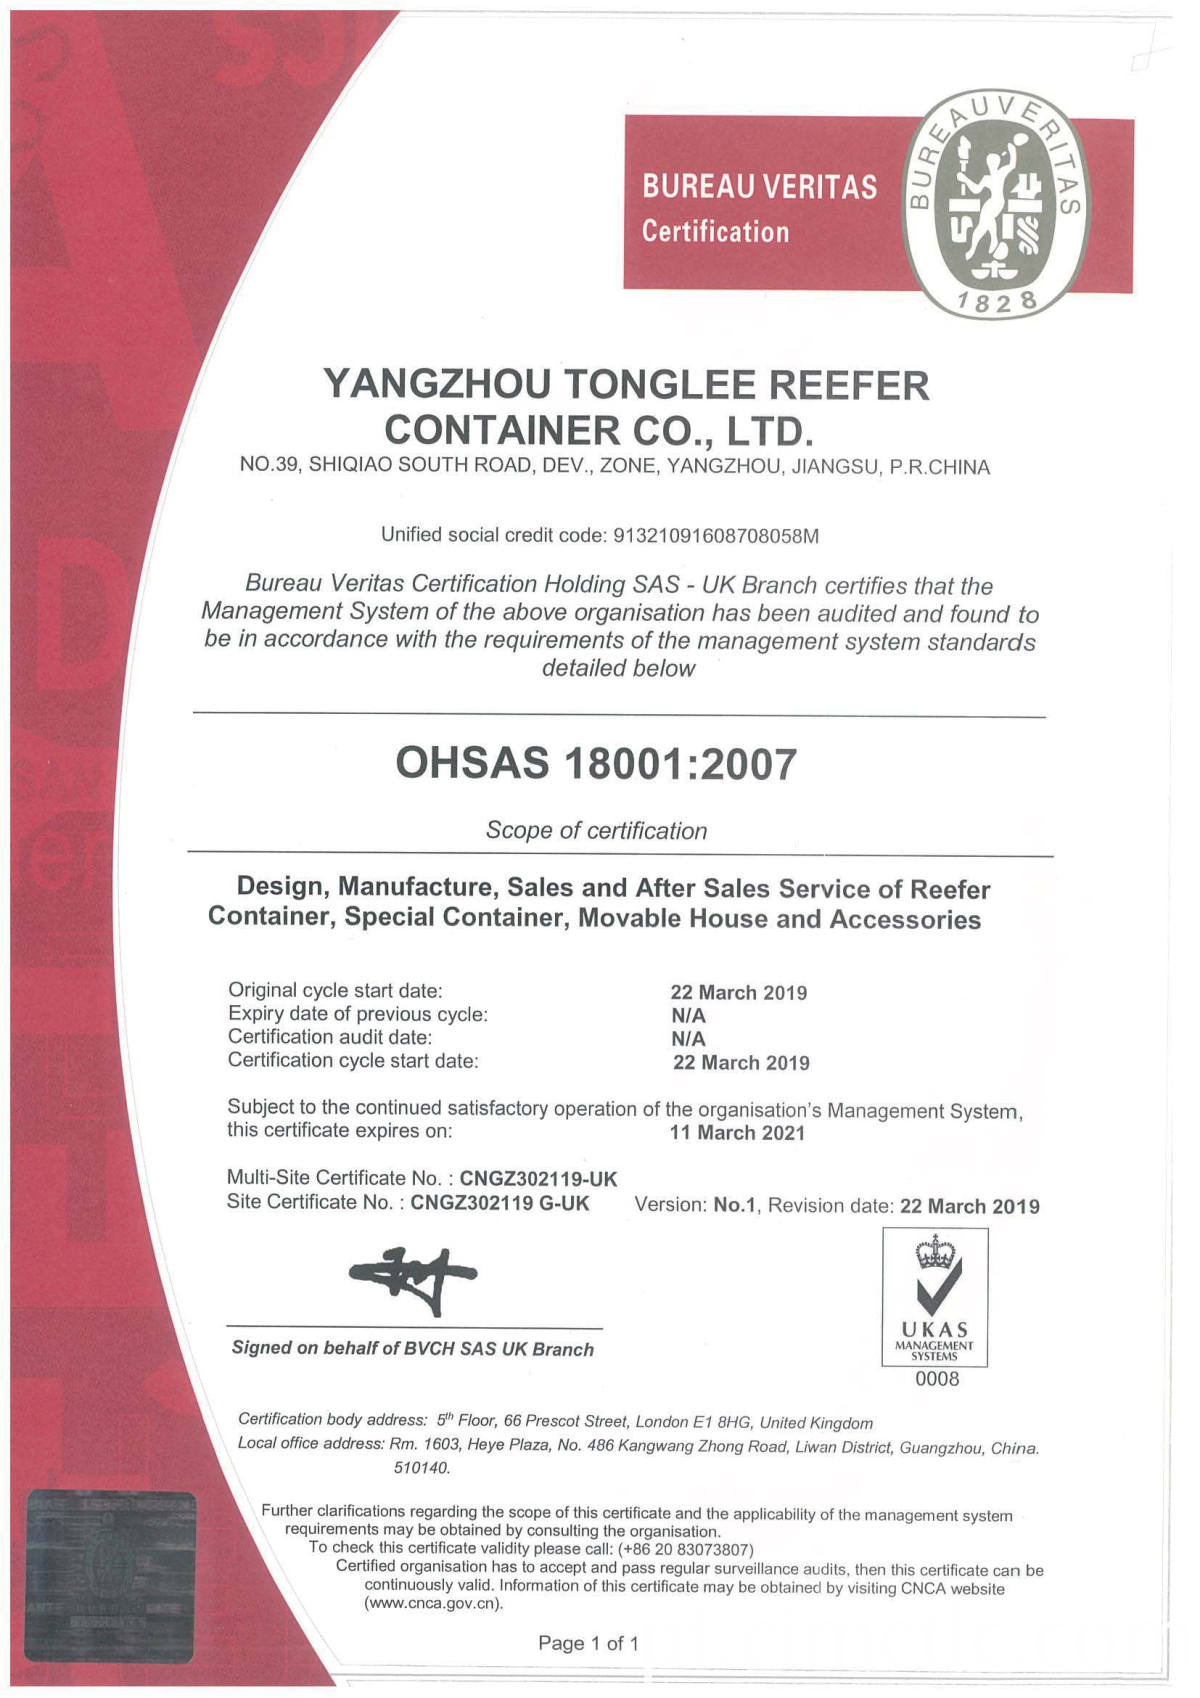 OSHAS 18001 certification for Modular Ice Maker Container